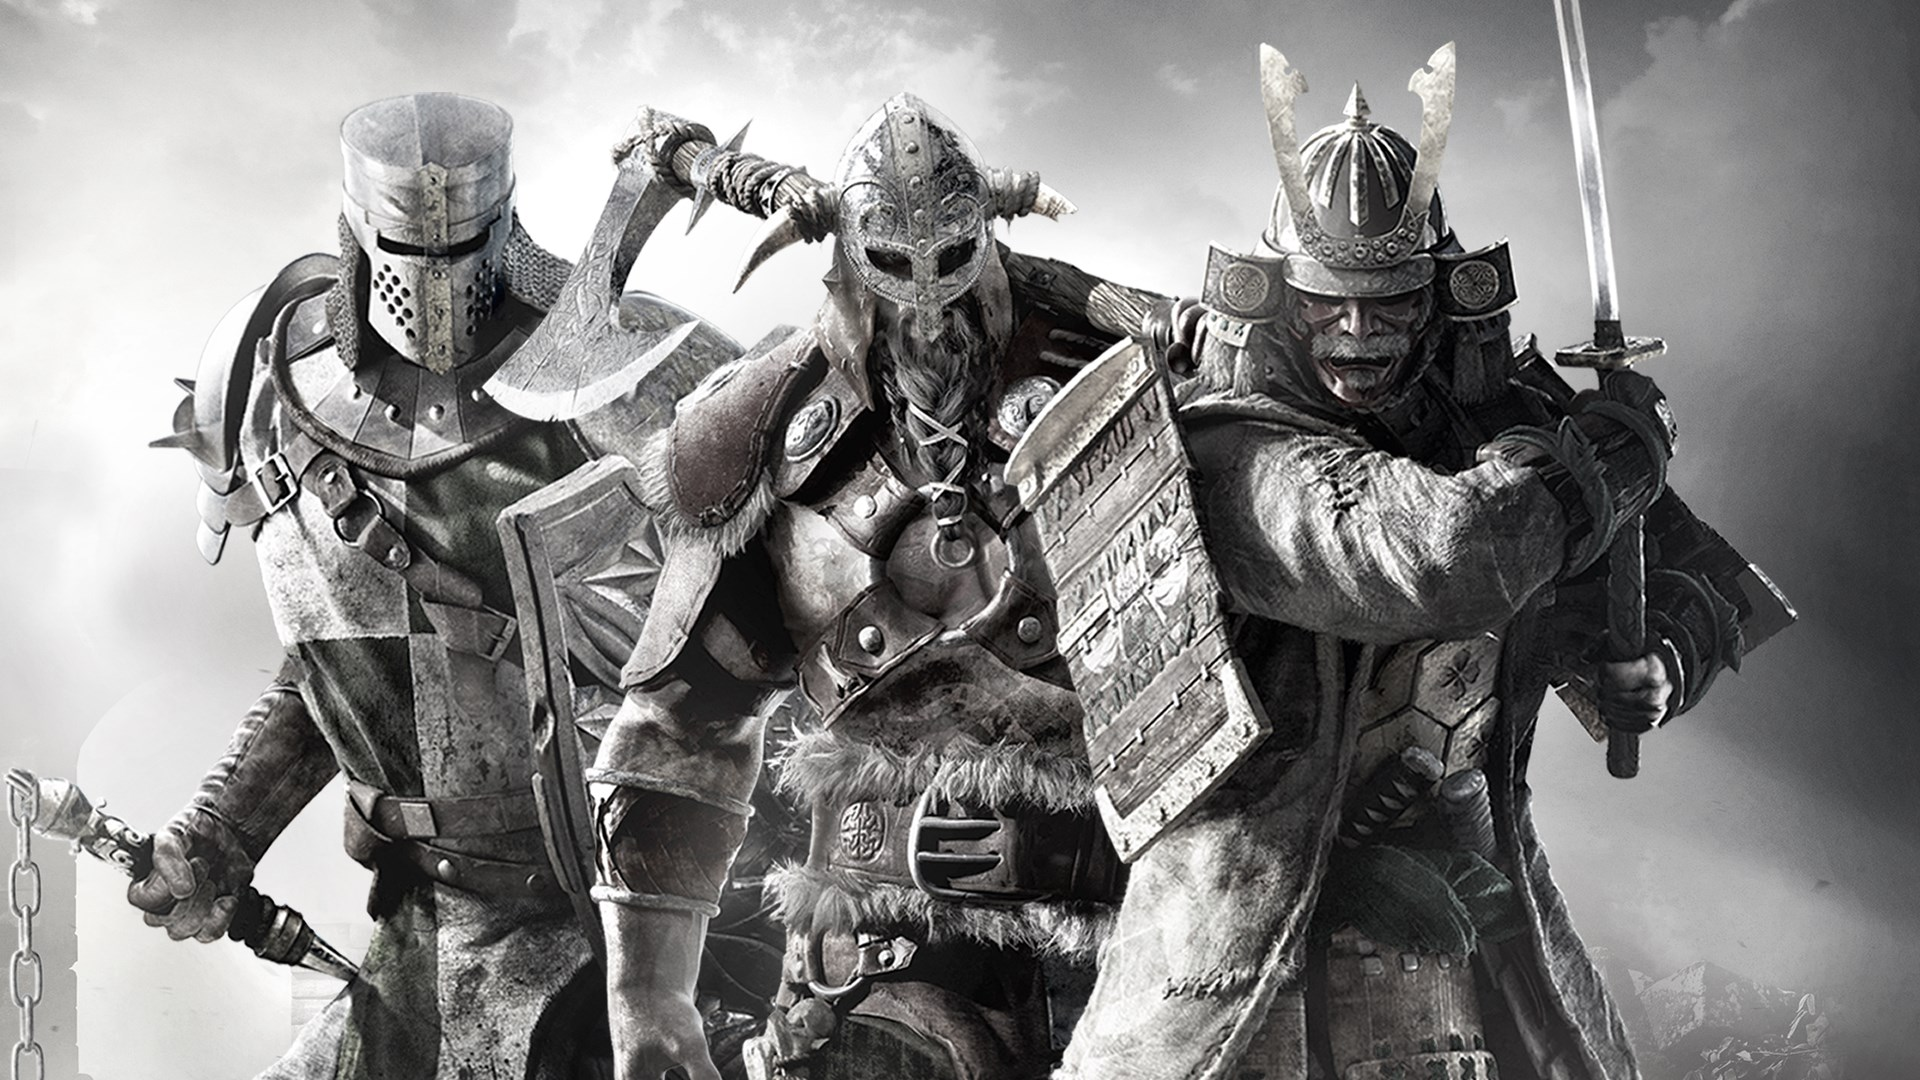 FOR HONOR SEASON PASS TICKET